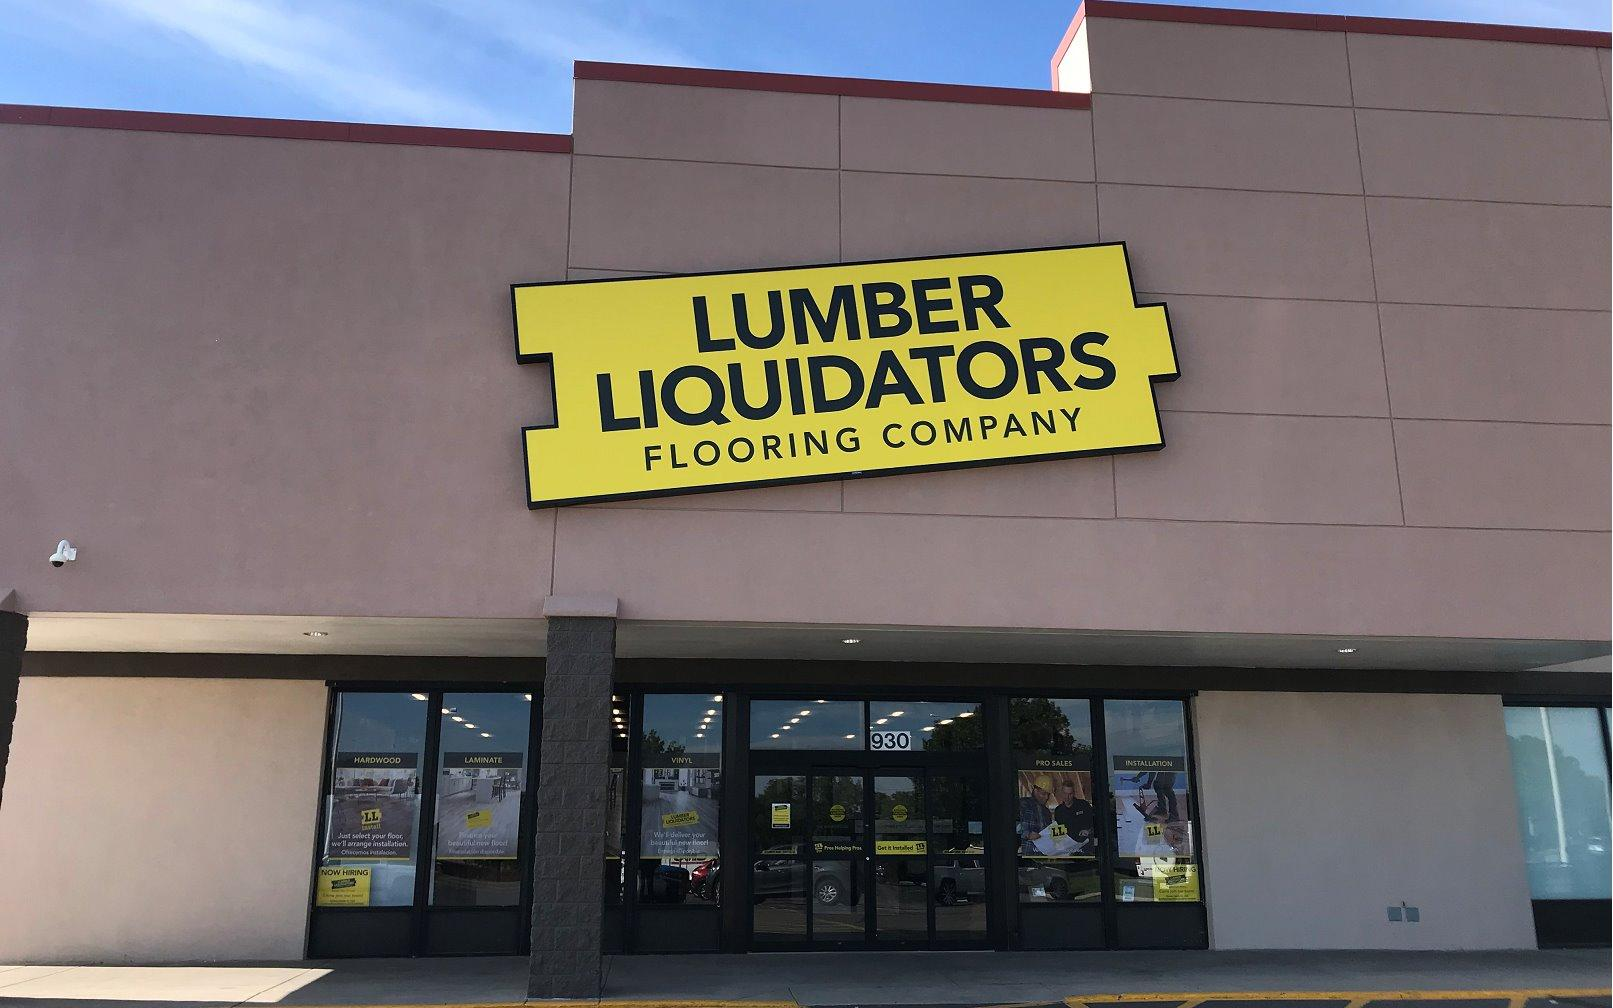 Lumber Liquidators Flooring Co. #1408 Thornton | 930 East 104th Avenue | Store Front